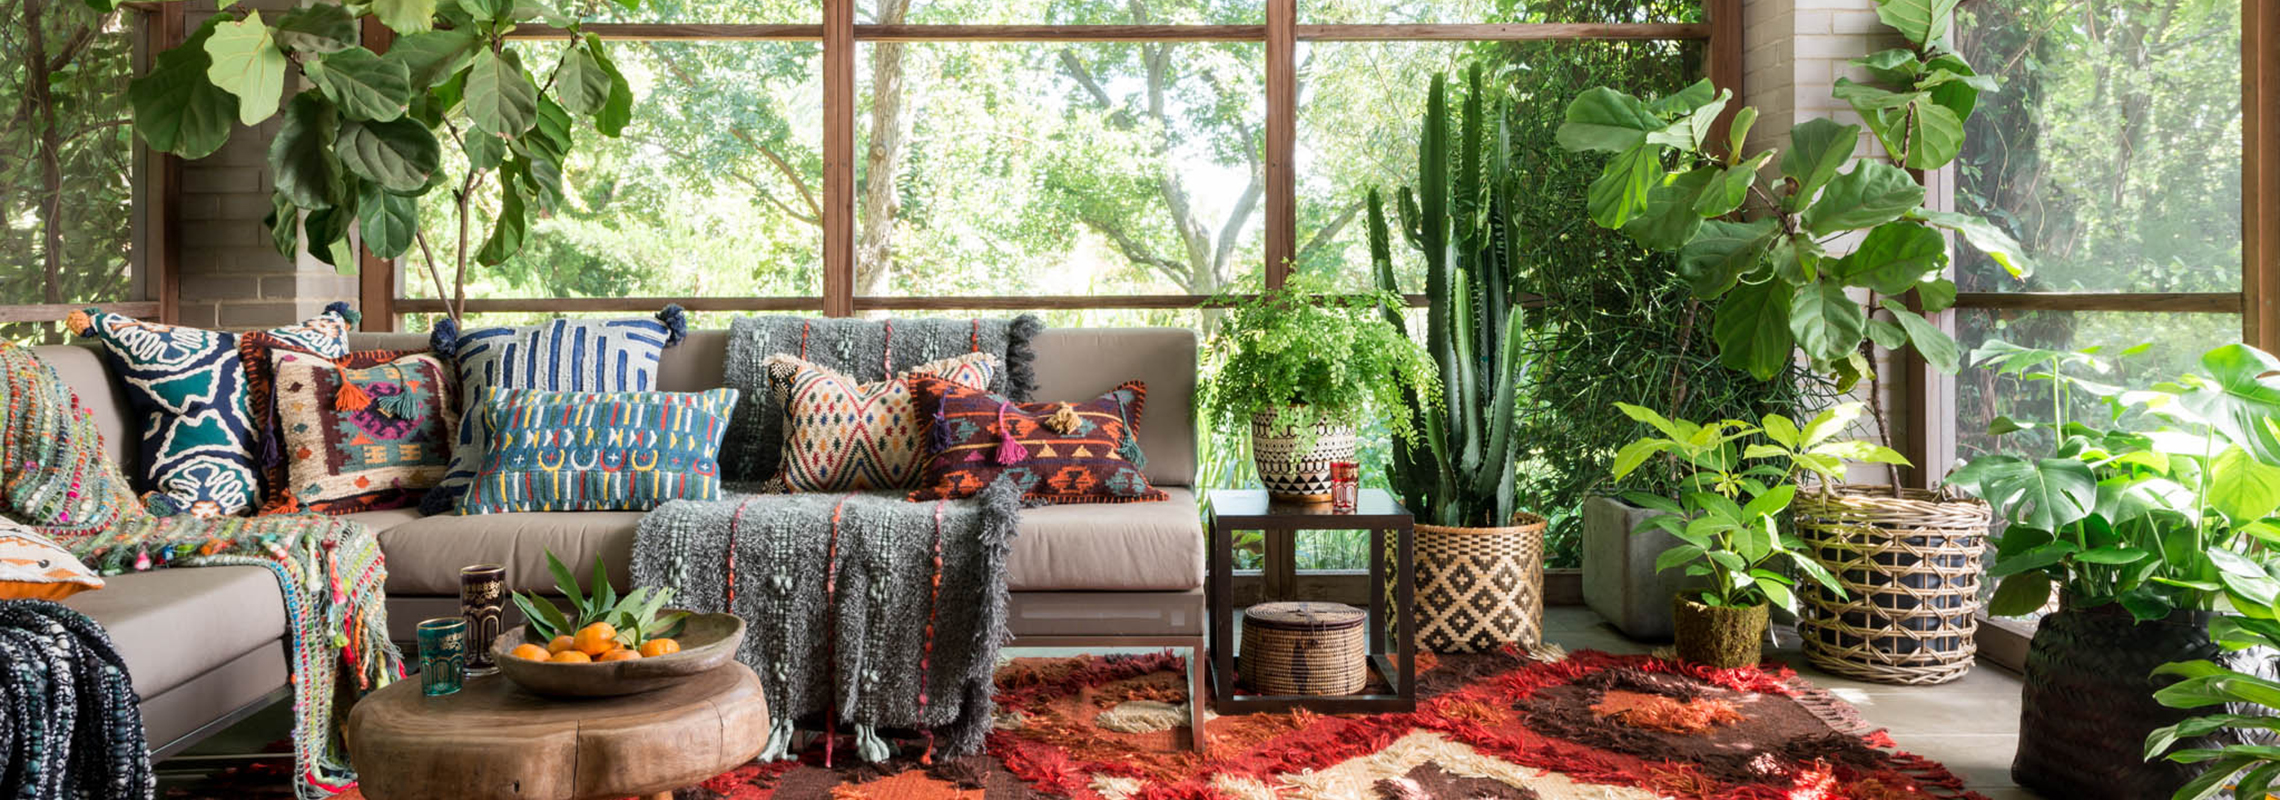 You re currently accepting projects. Celebrity Interior Designer Justina Blakeney   Decorist